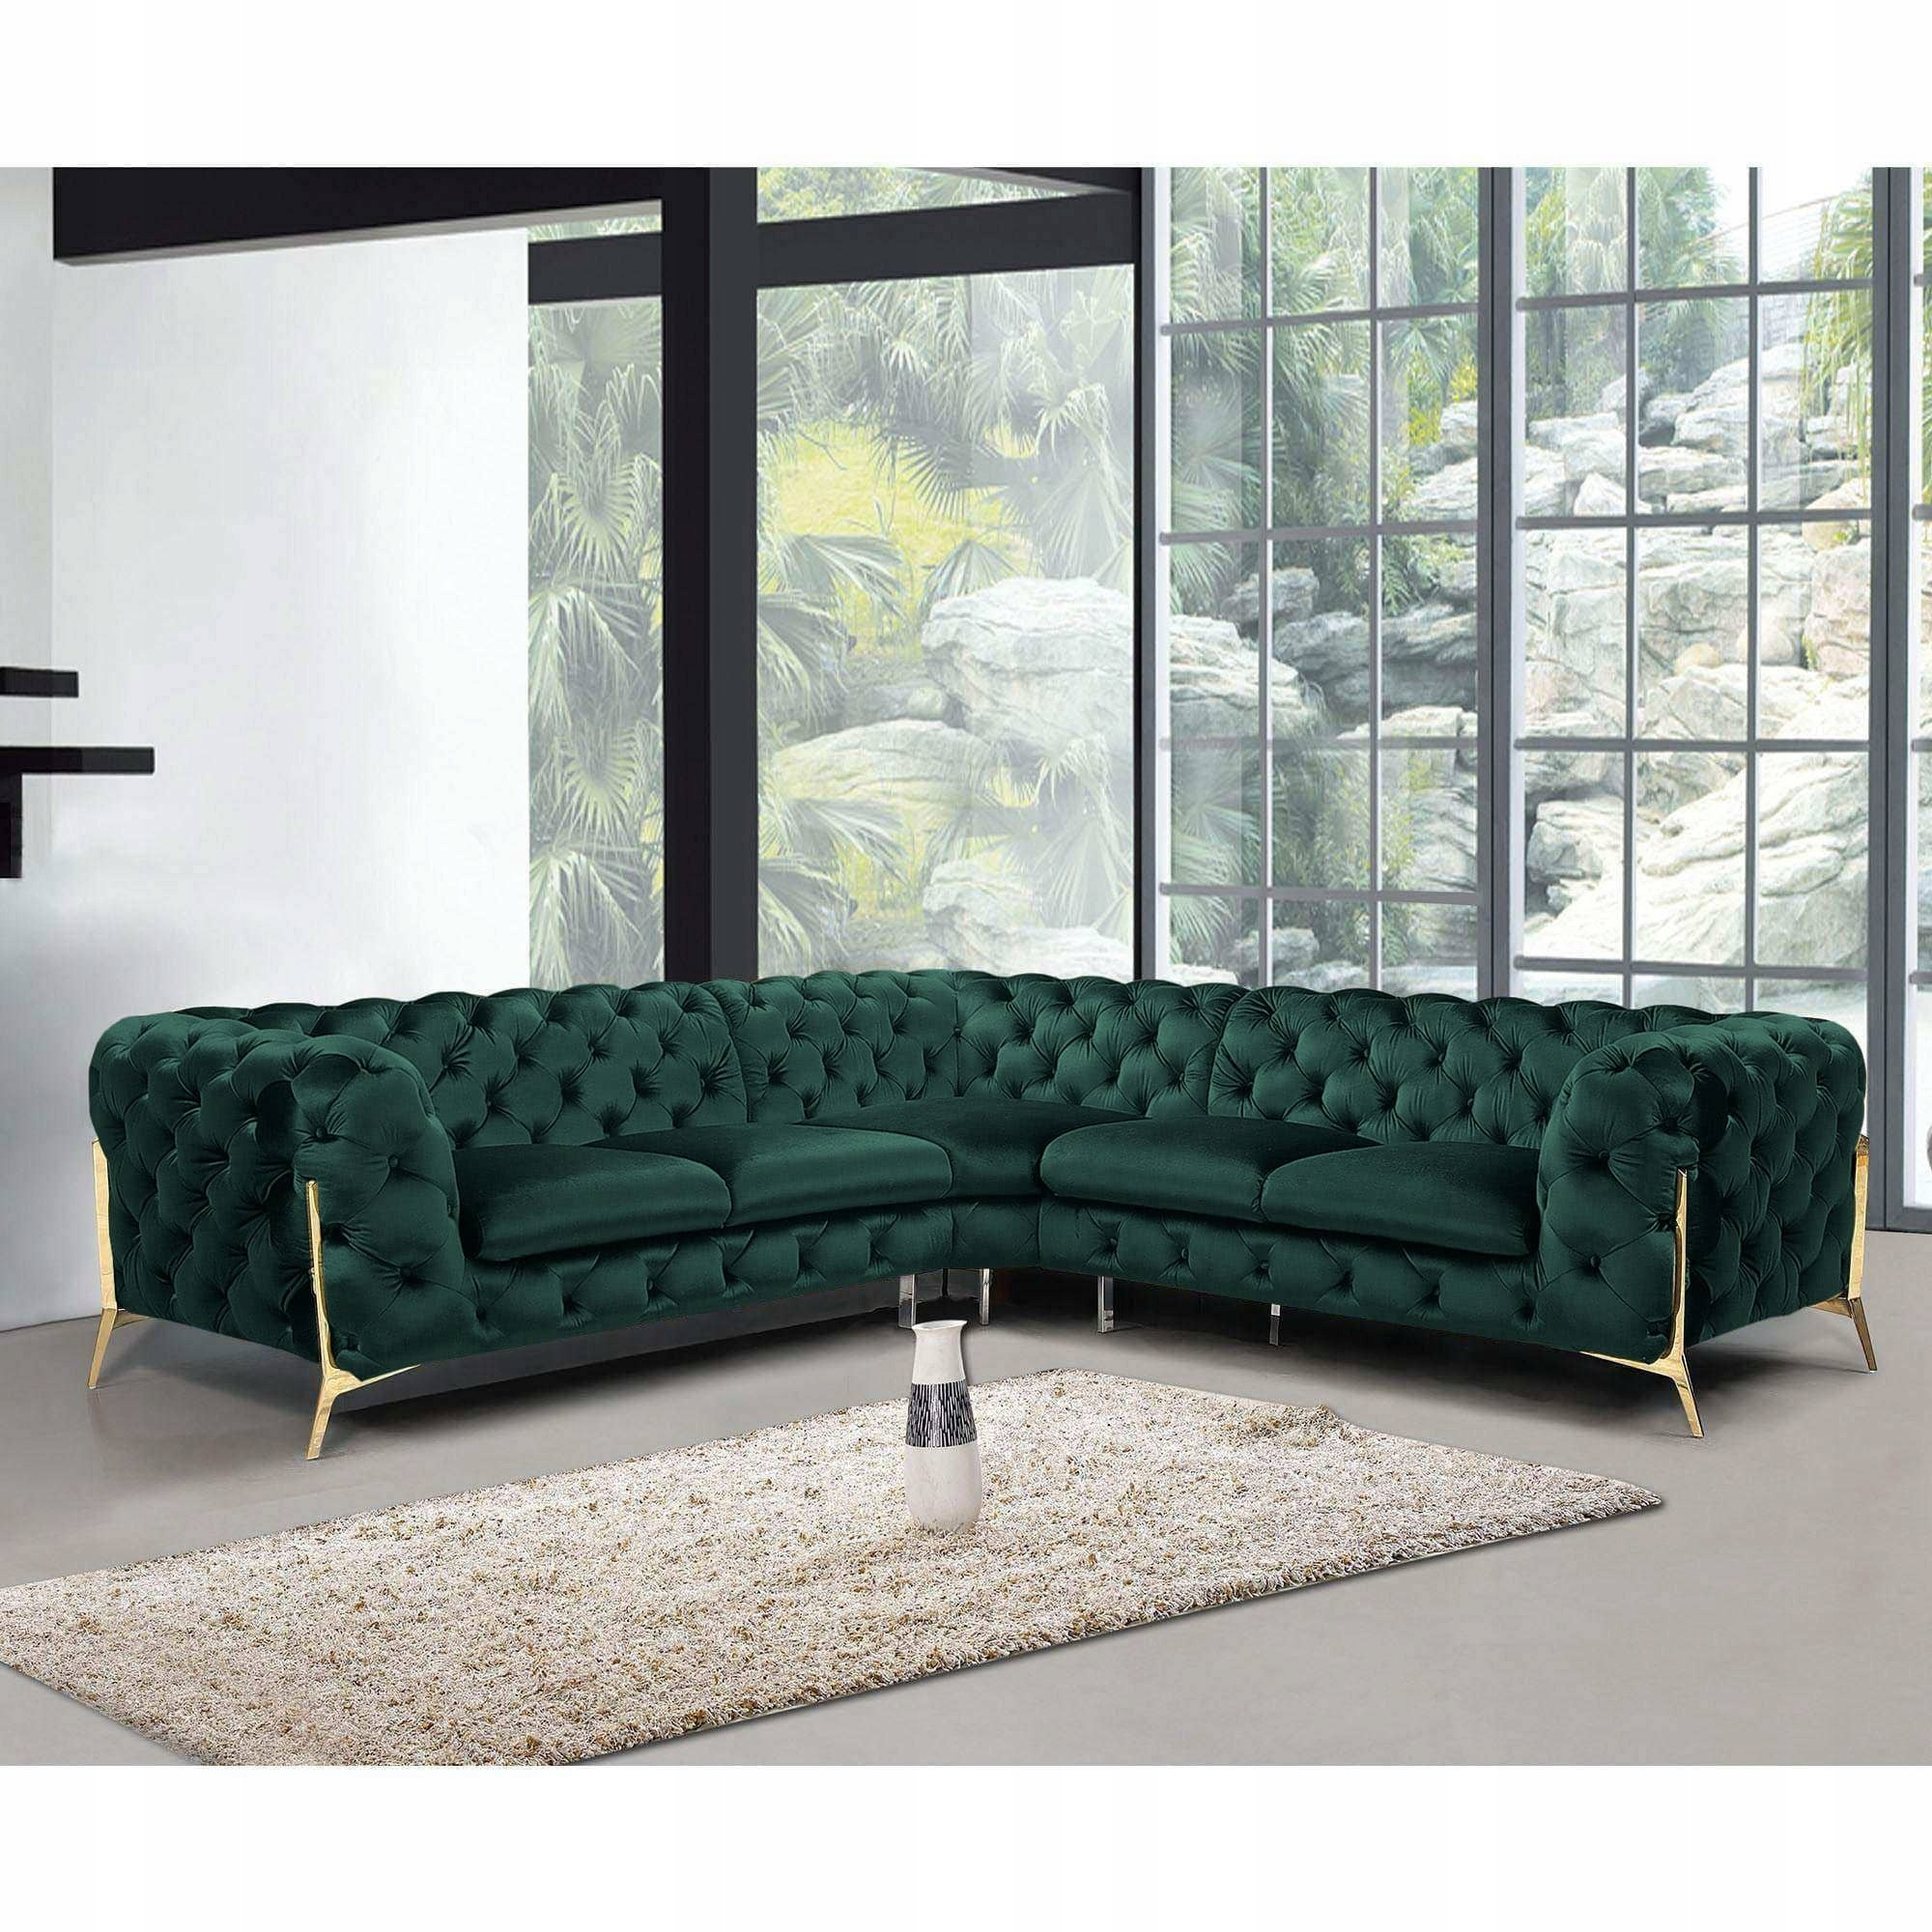 Угловой диван GLAMOUR STYLE Quilted Large Modern